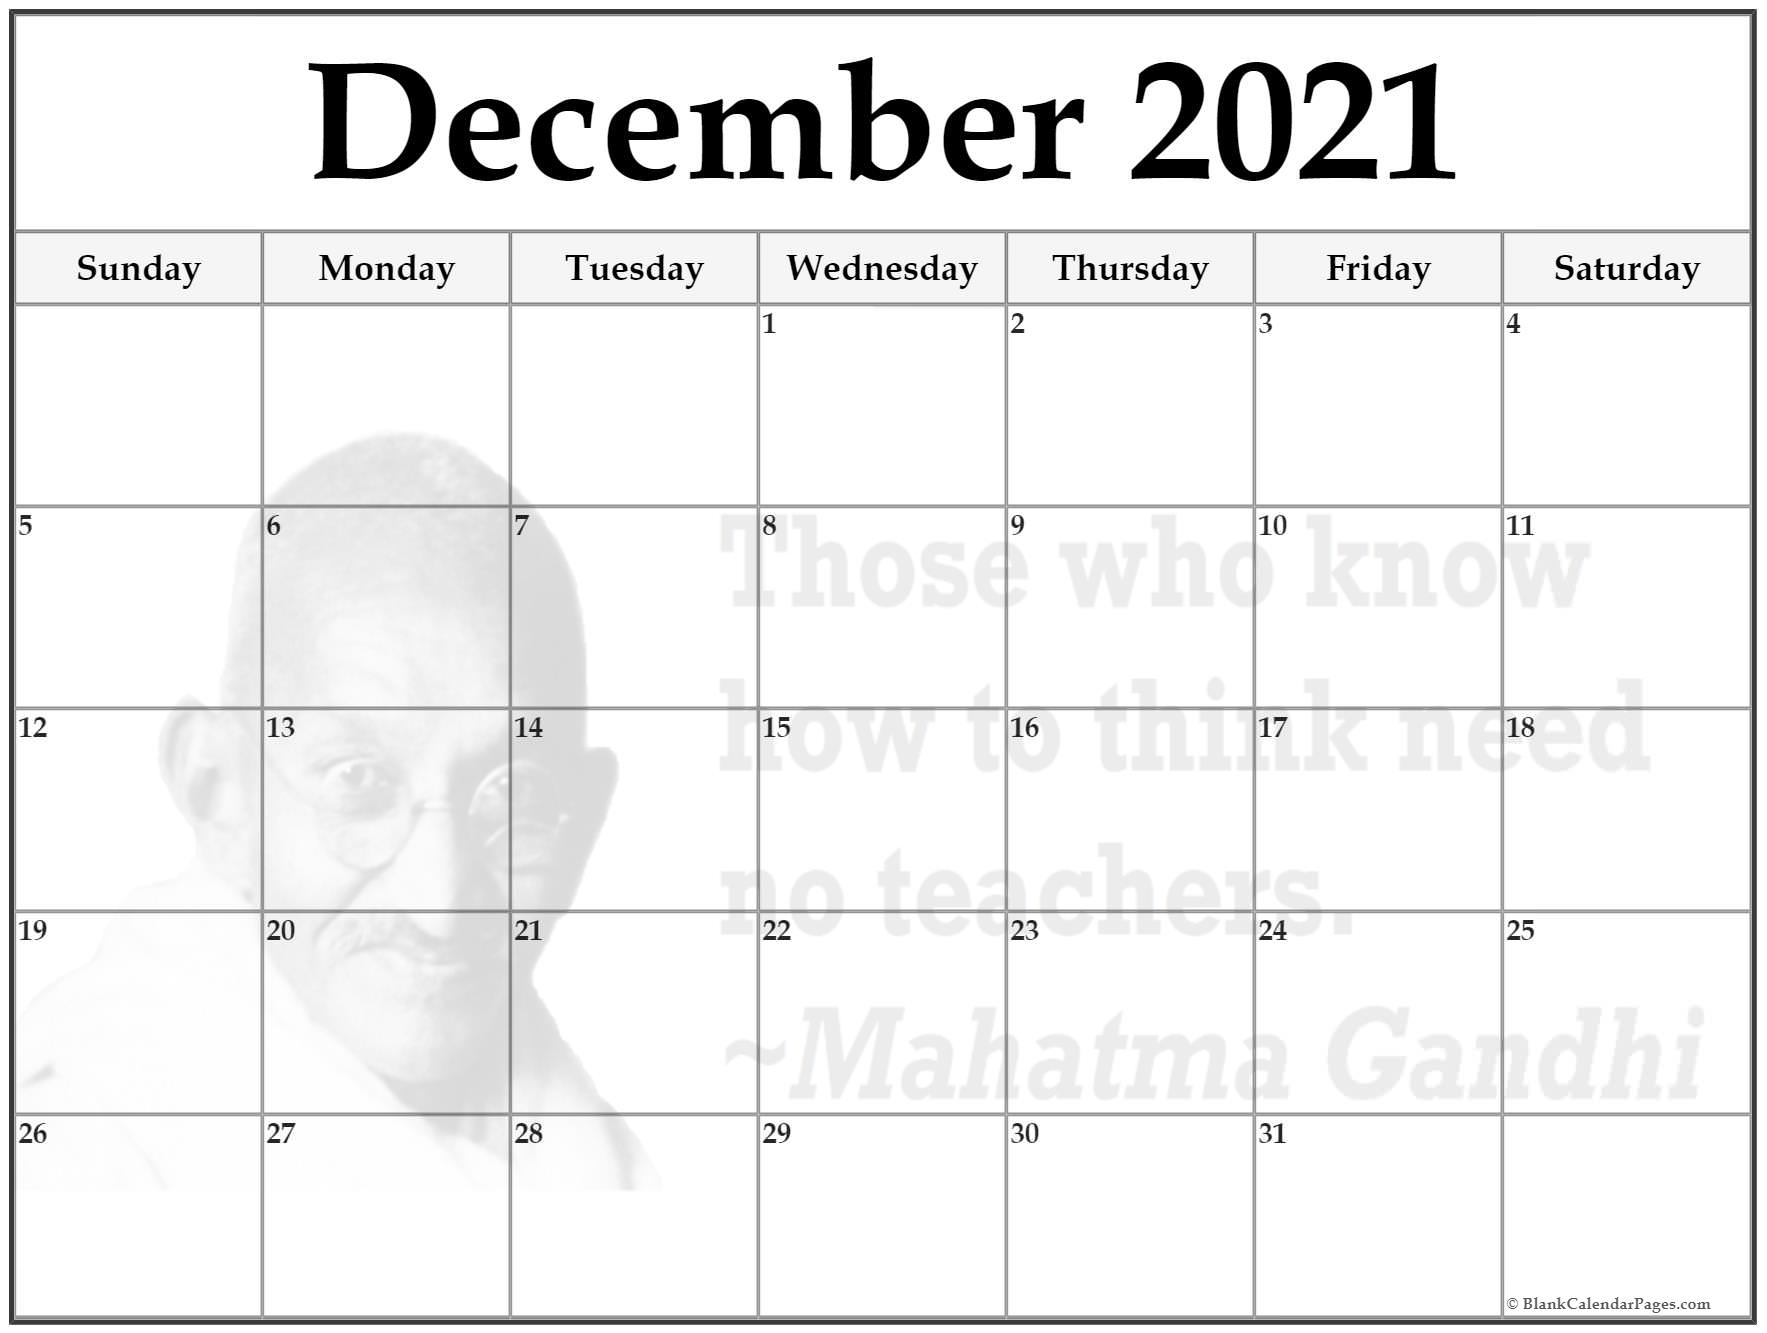 December 2019 monthly calendar template. Those who know how to think need no teachers. ~Mahatma Gandhi